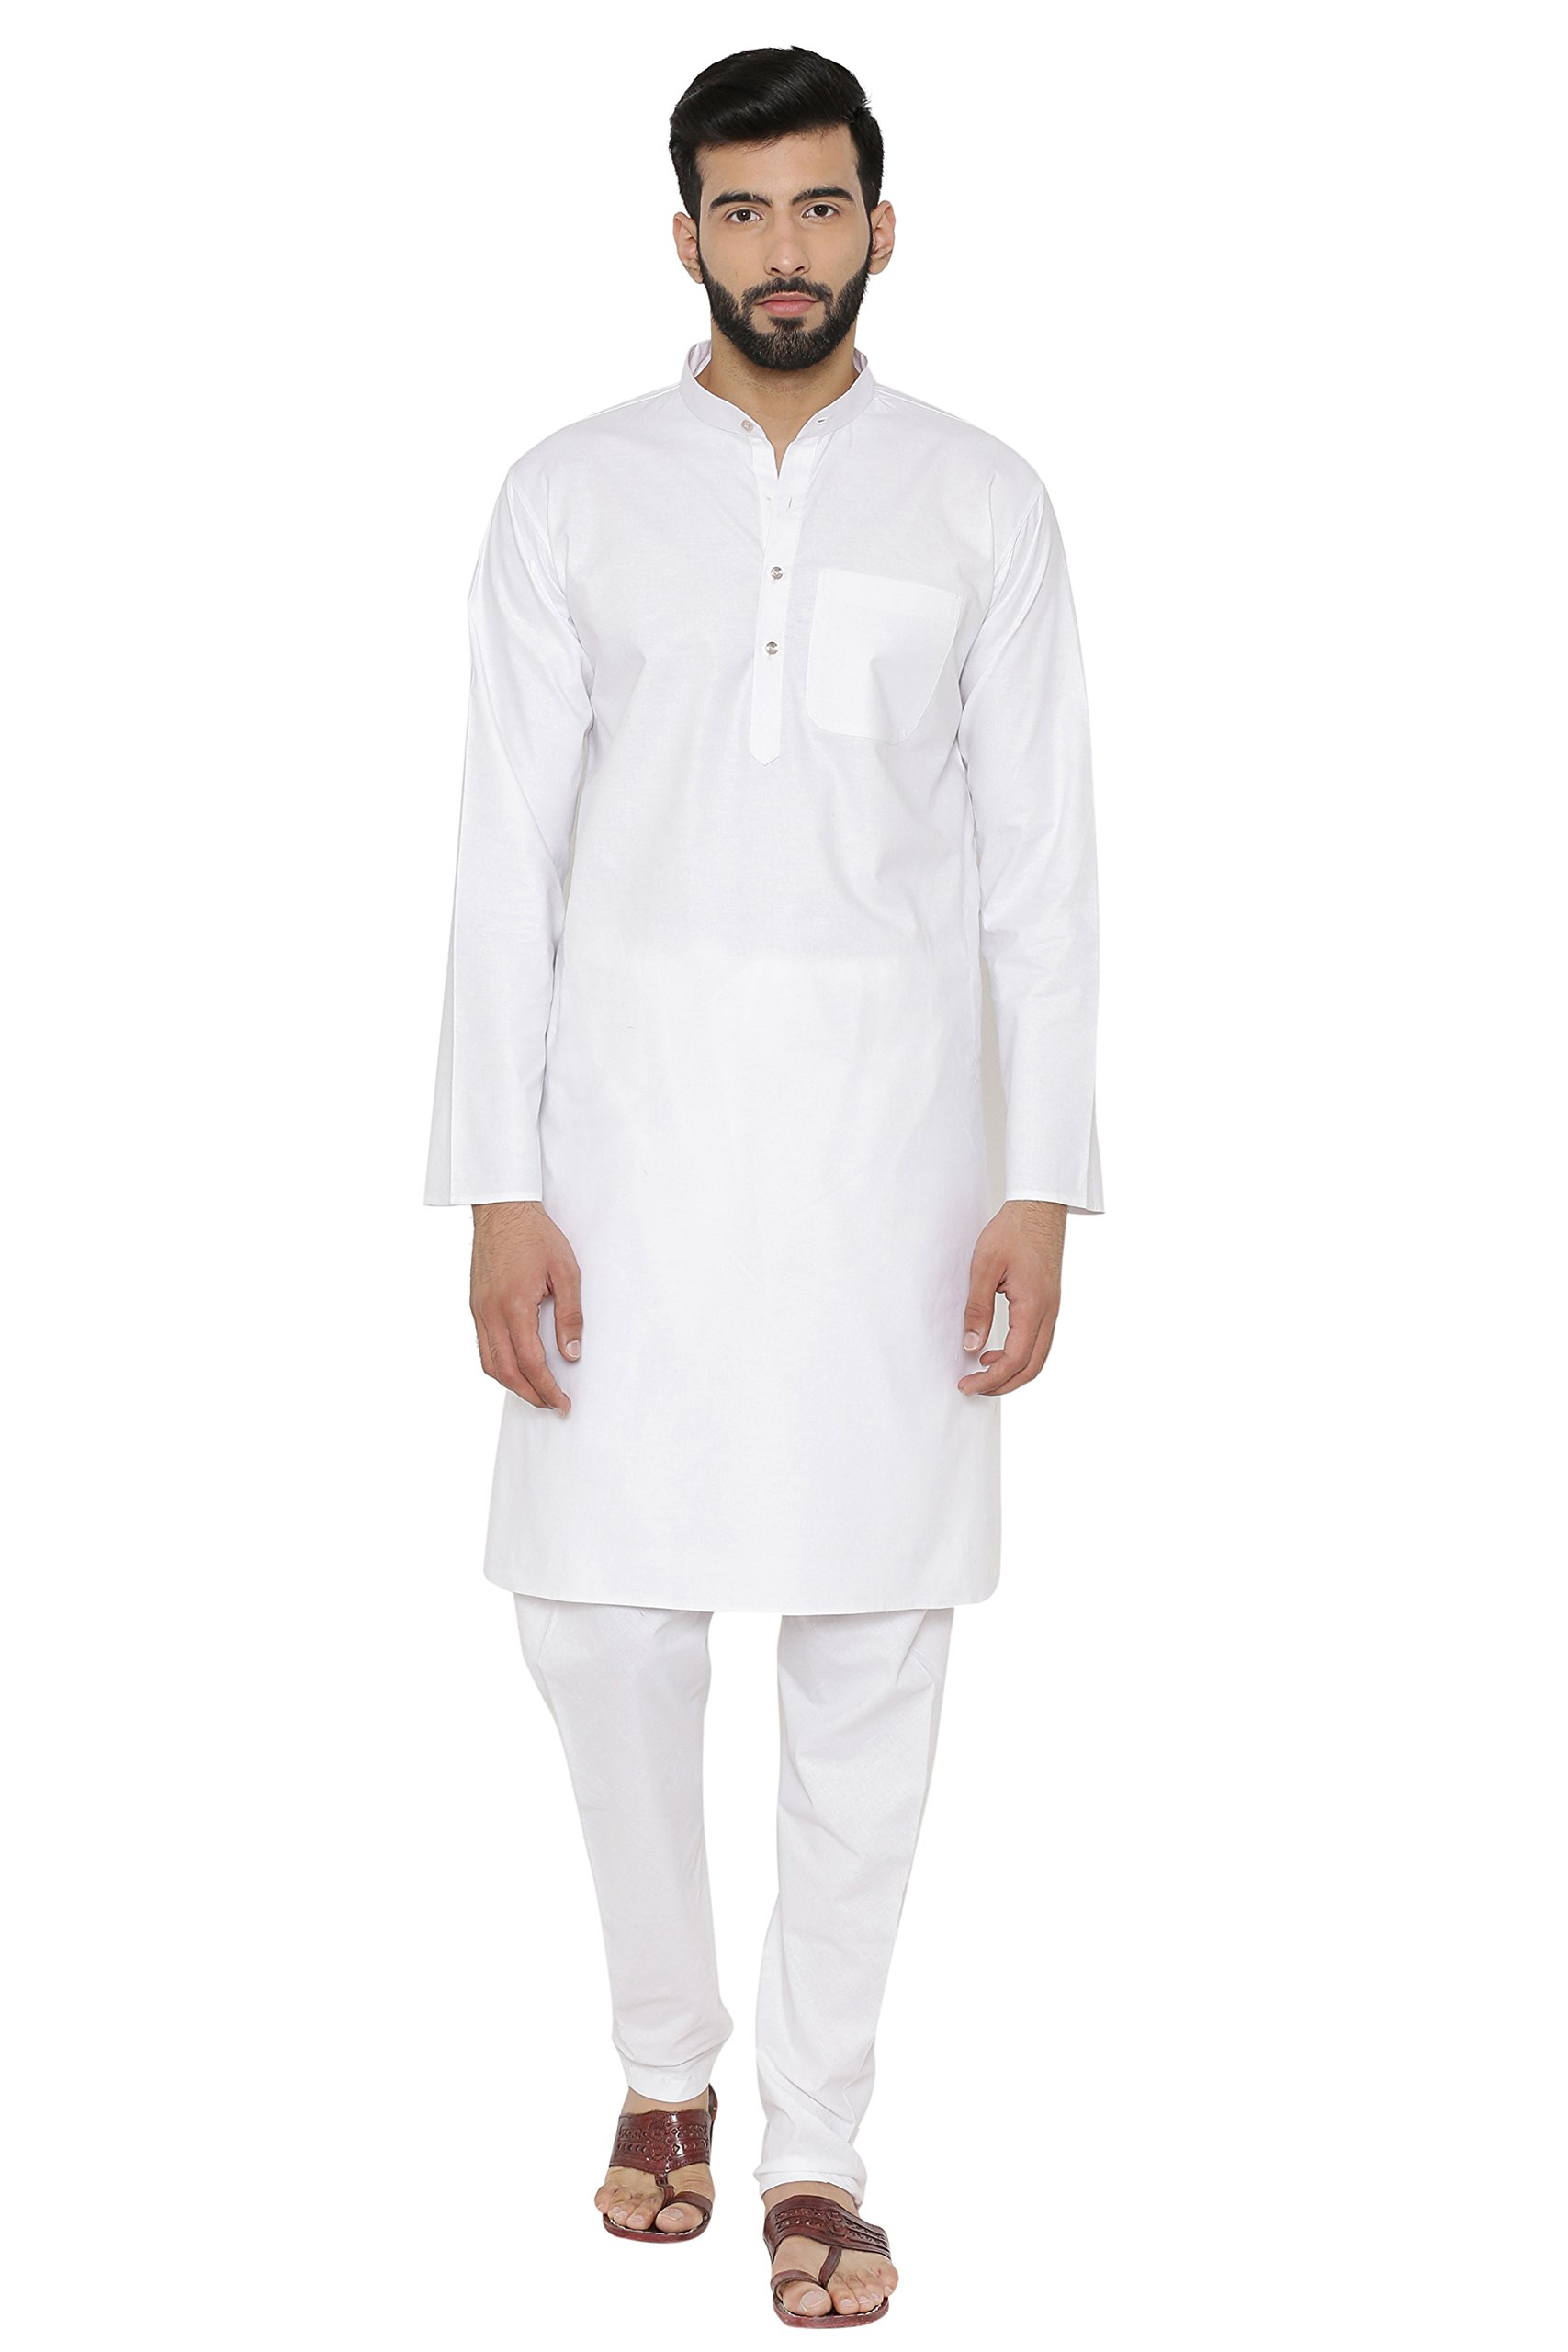 WINTAGE Men's 100% Cotton Khadi Tailored Fit Party/Festive Indian Kurta Pajama Pyjama Sleep Sets